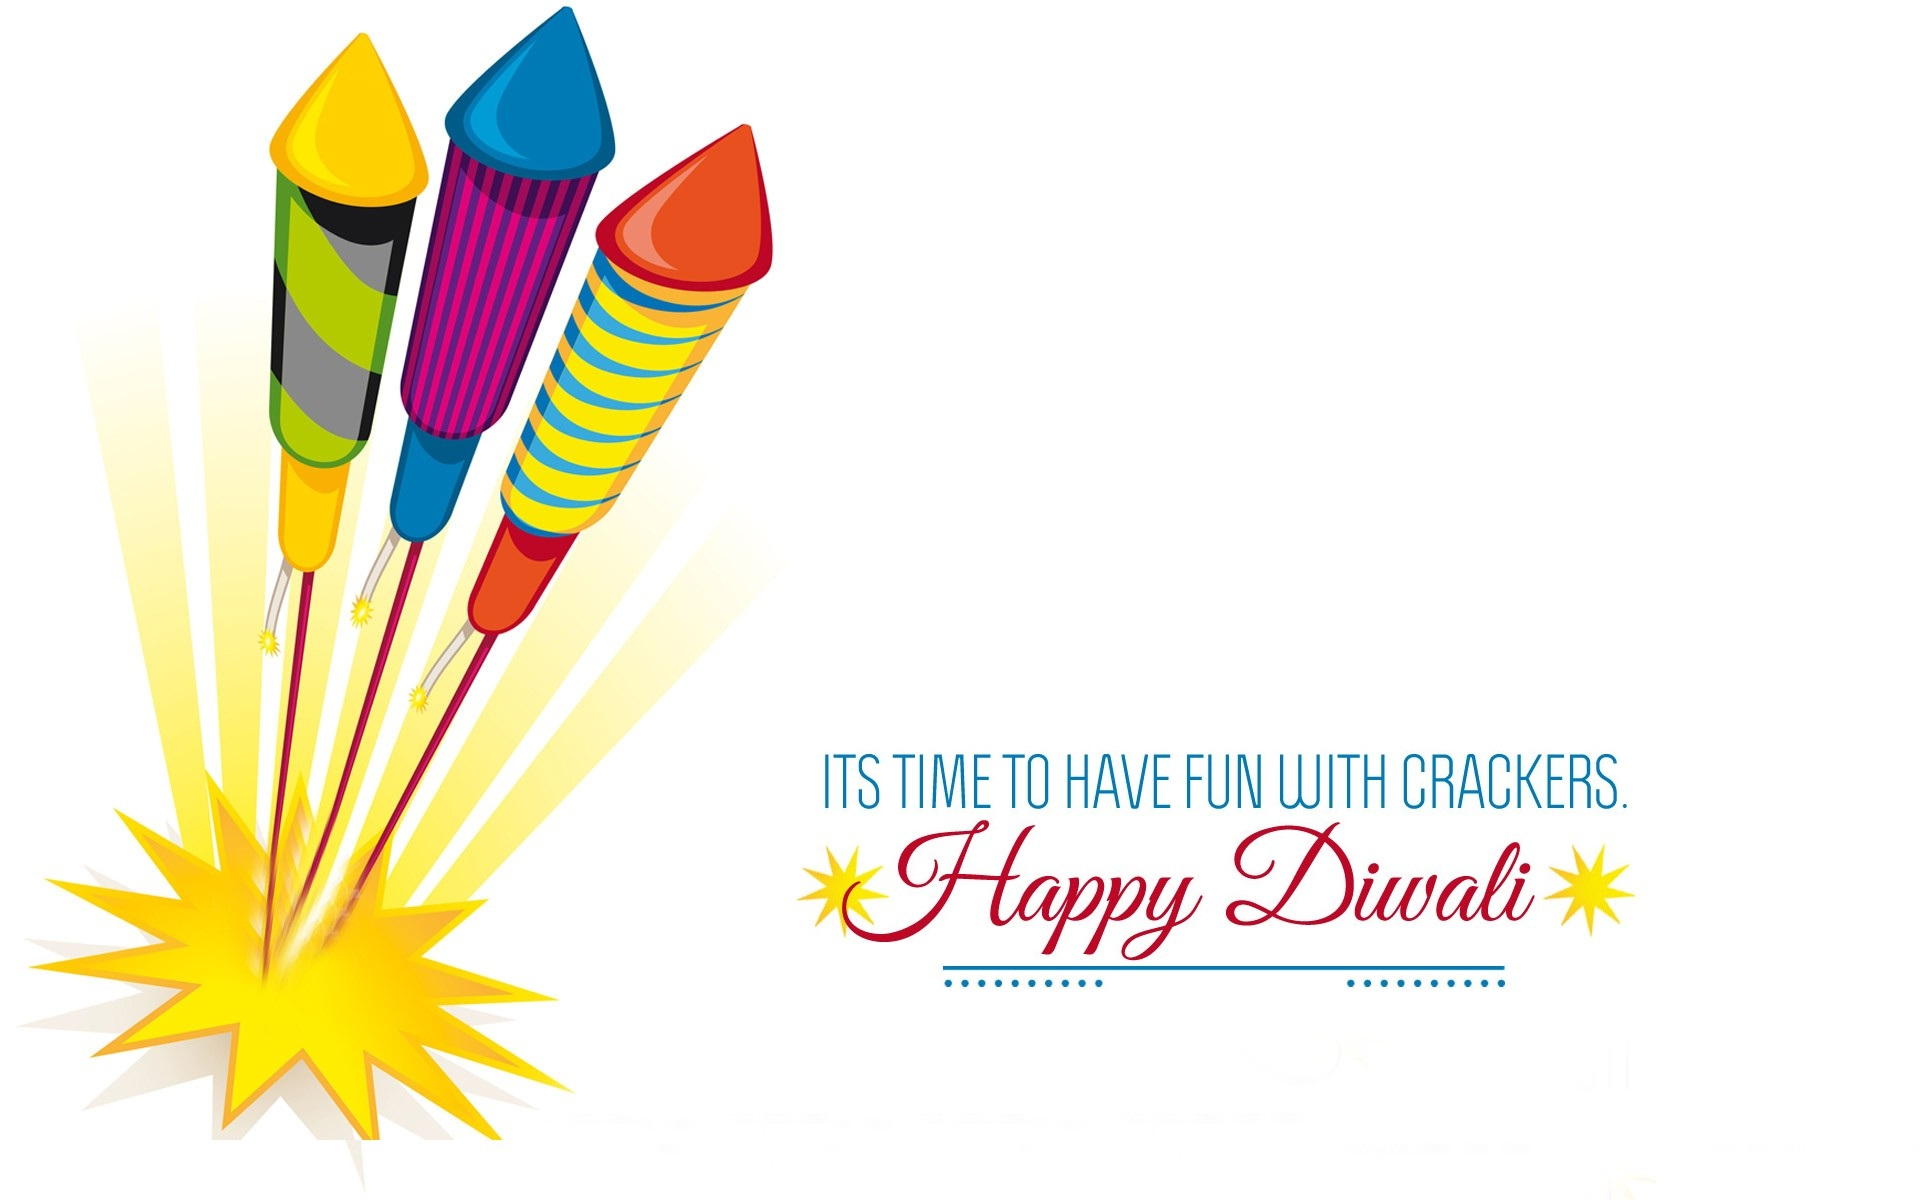 happy diwali greetings and crackers lets celebrate our diwali picture images